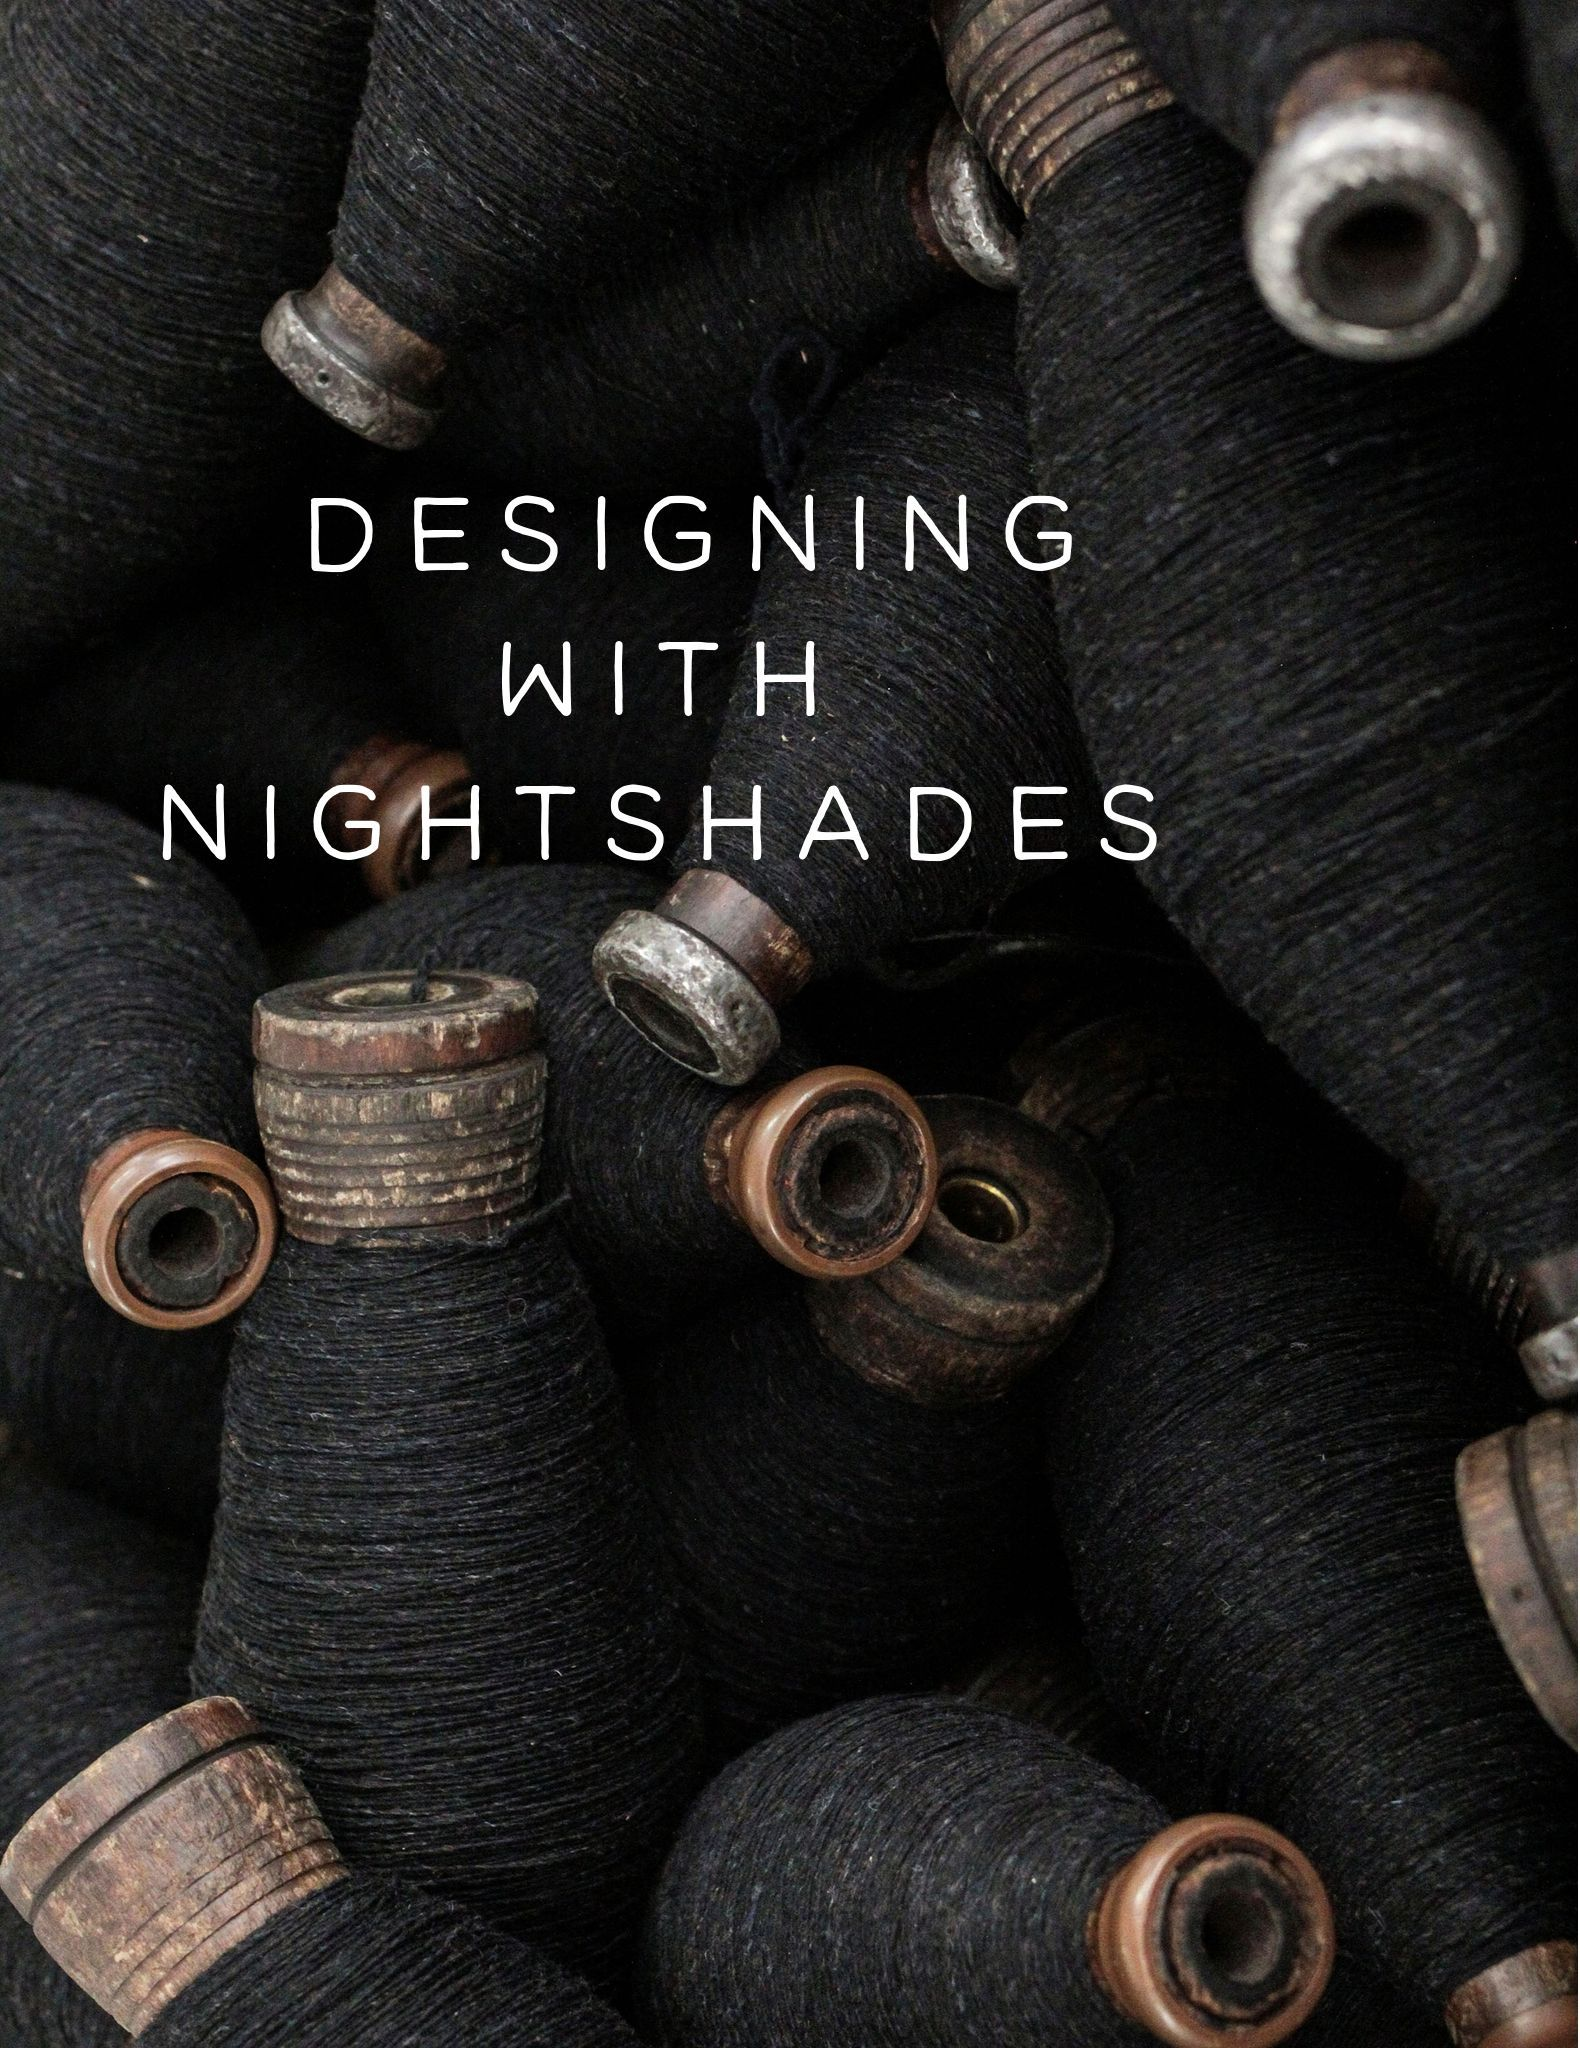 Designing with Nightshades, a guest post by Whitney Hayward